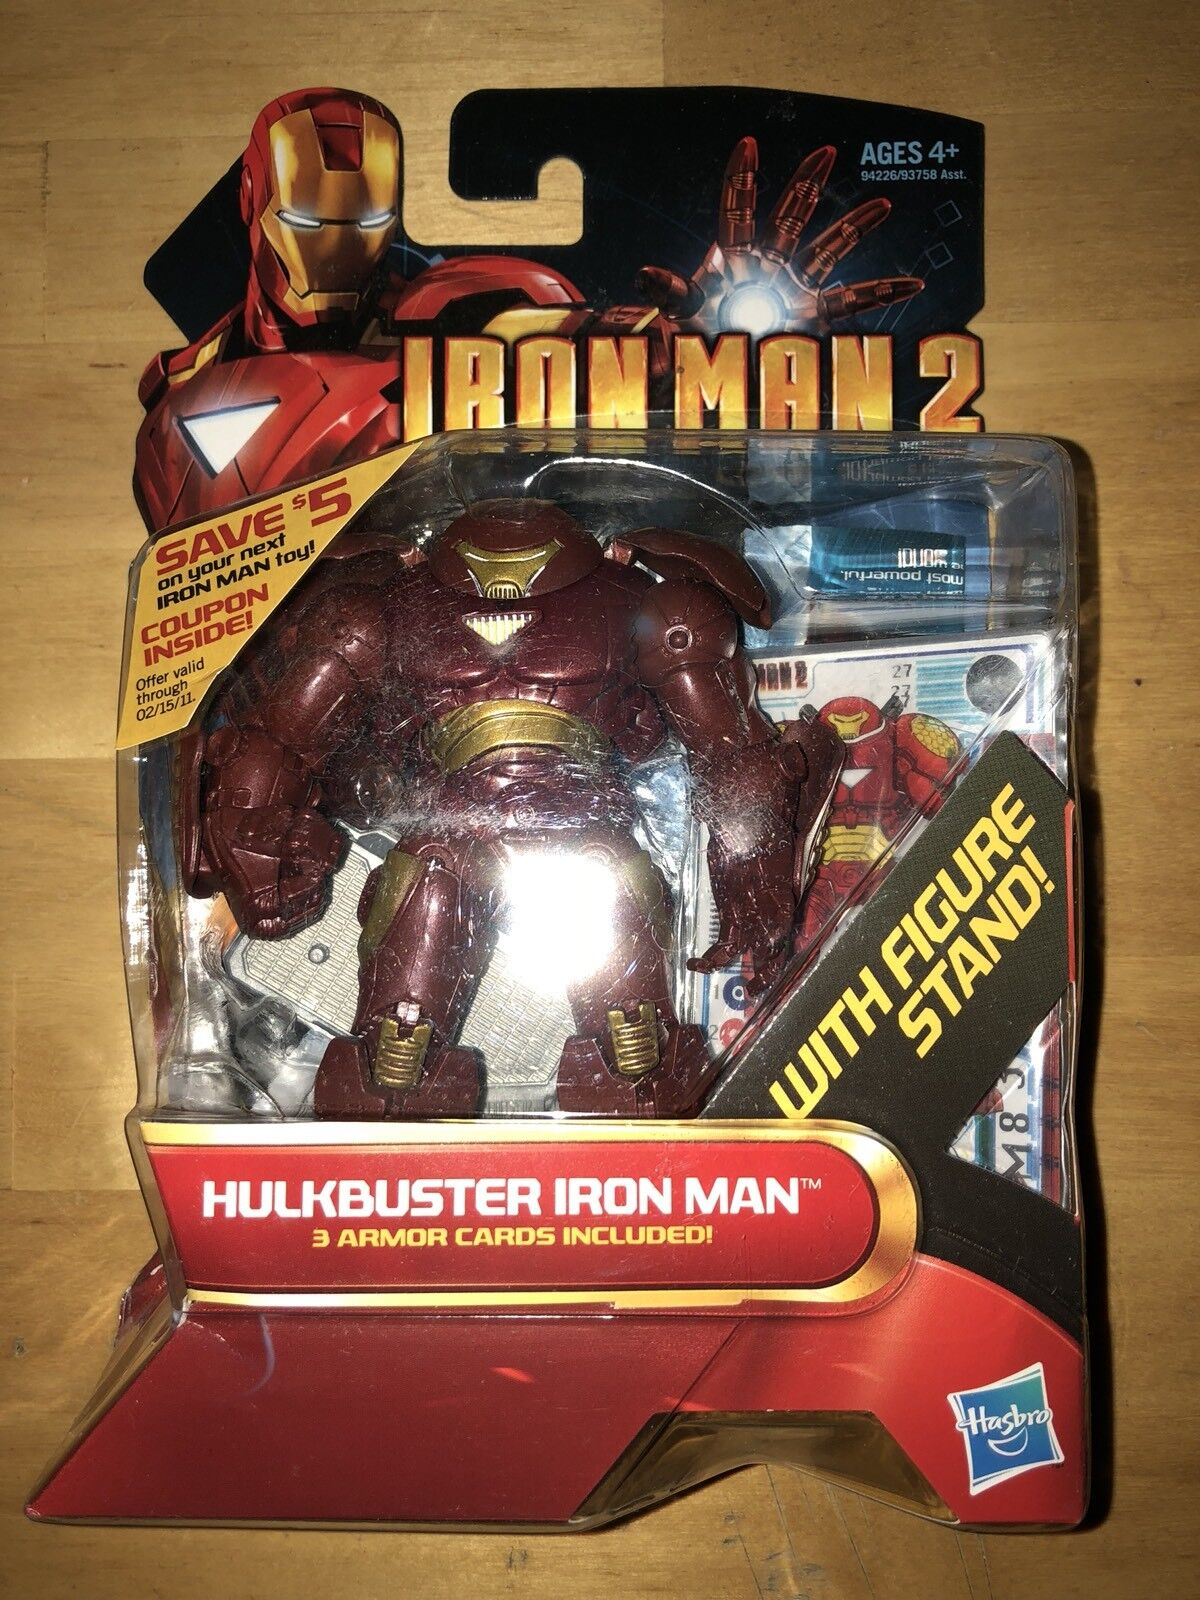 Marvel IRON MAN 2 Hulk buster Iron Man   AF IM2 9